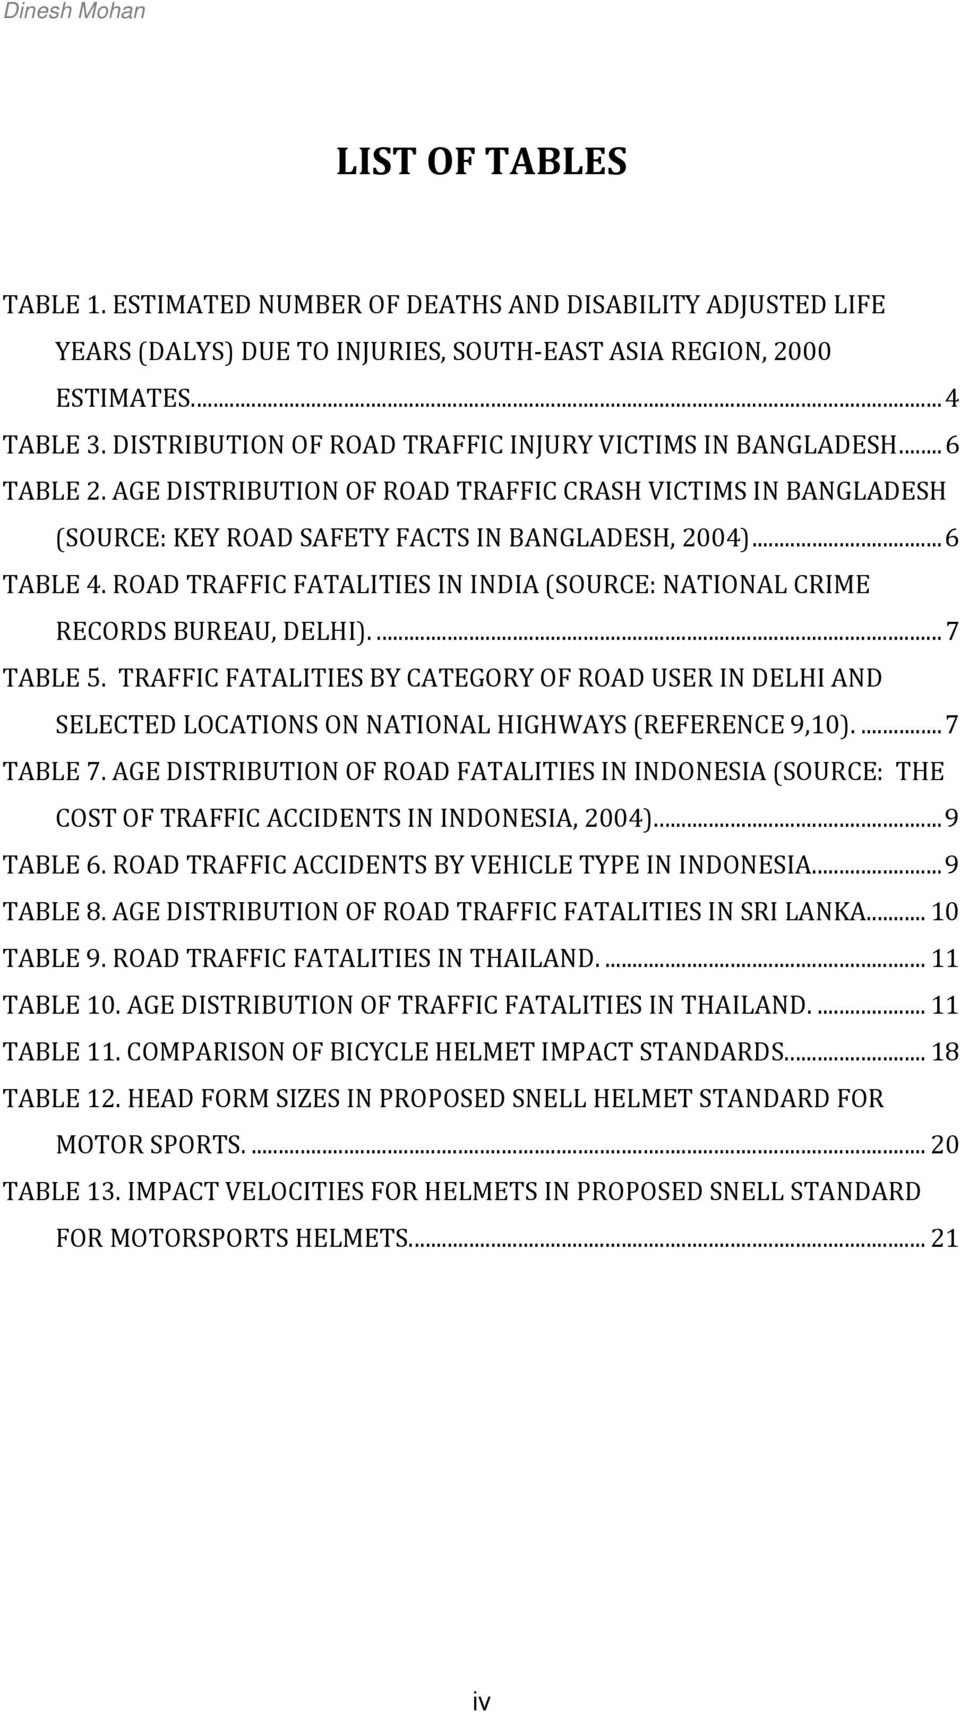 ROAD TRAFFIC FATALITIES IN INDIA (SOURCE: NATIONAL CRIME RECORDS BUREAU, DELHI).... 7 TABLE 5.